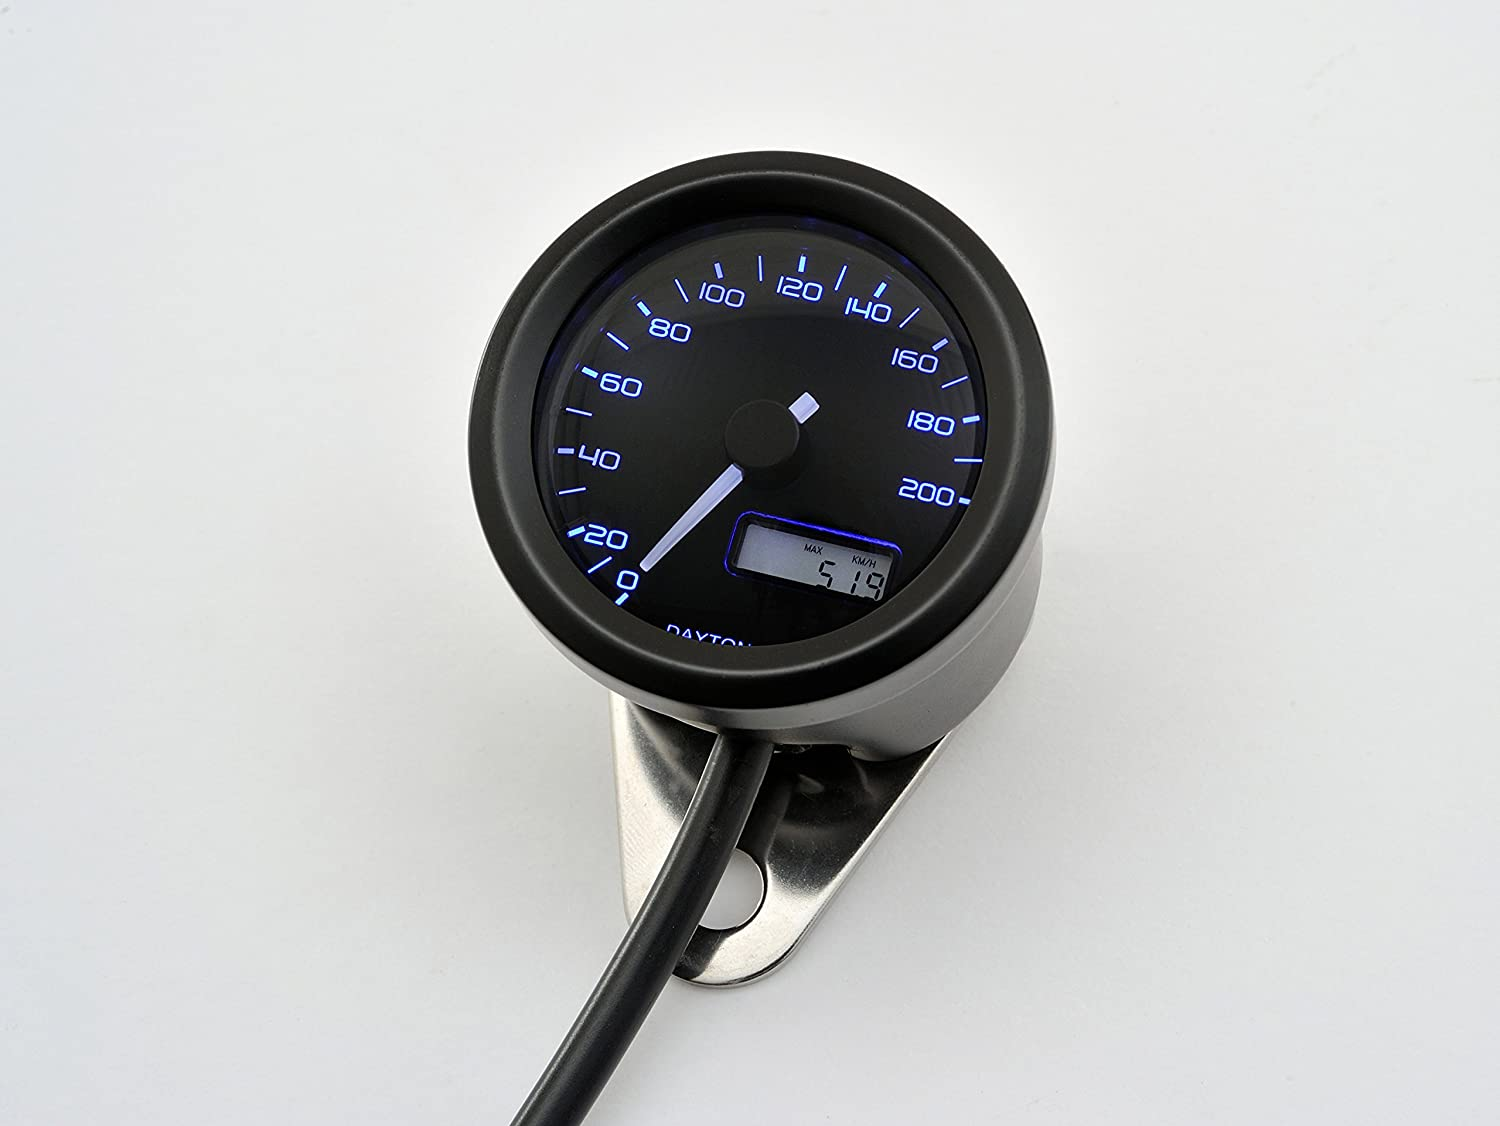 Daytona Velona Speedometer 200mph Black Multi Instruments Speedo Wiring Diagram Background Led Option Automotive